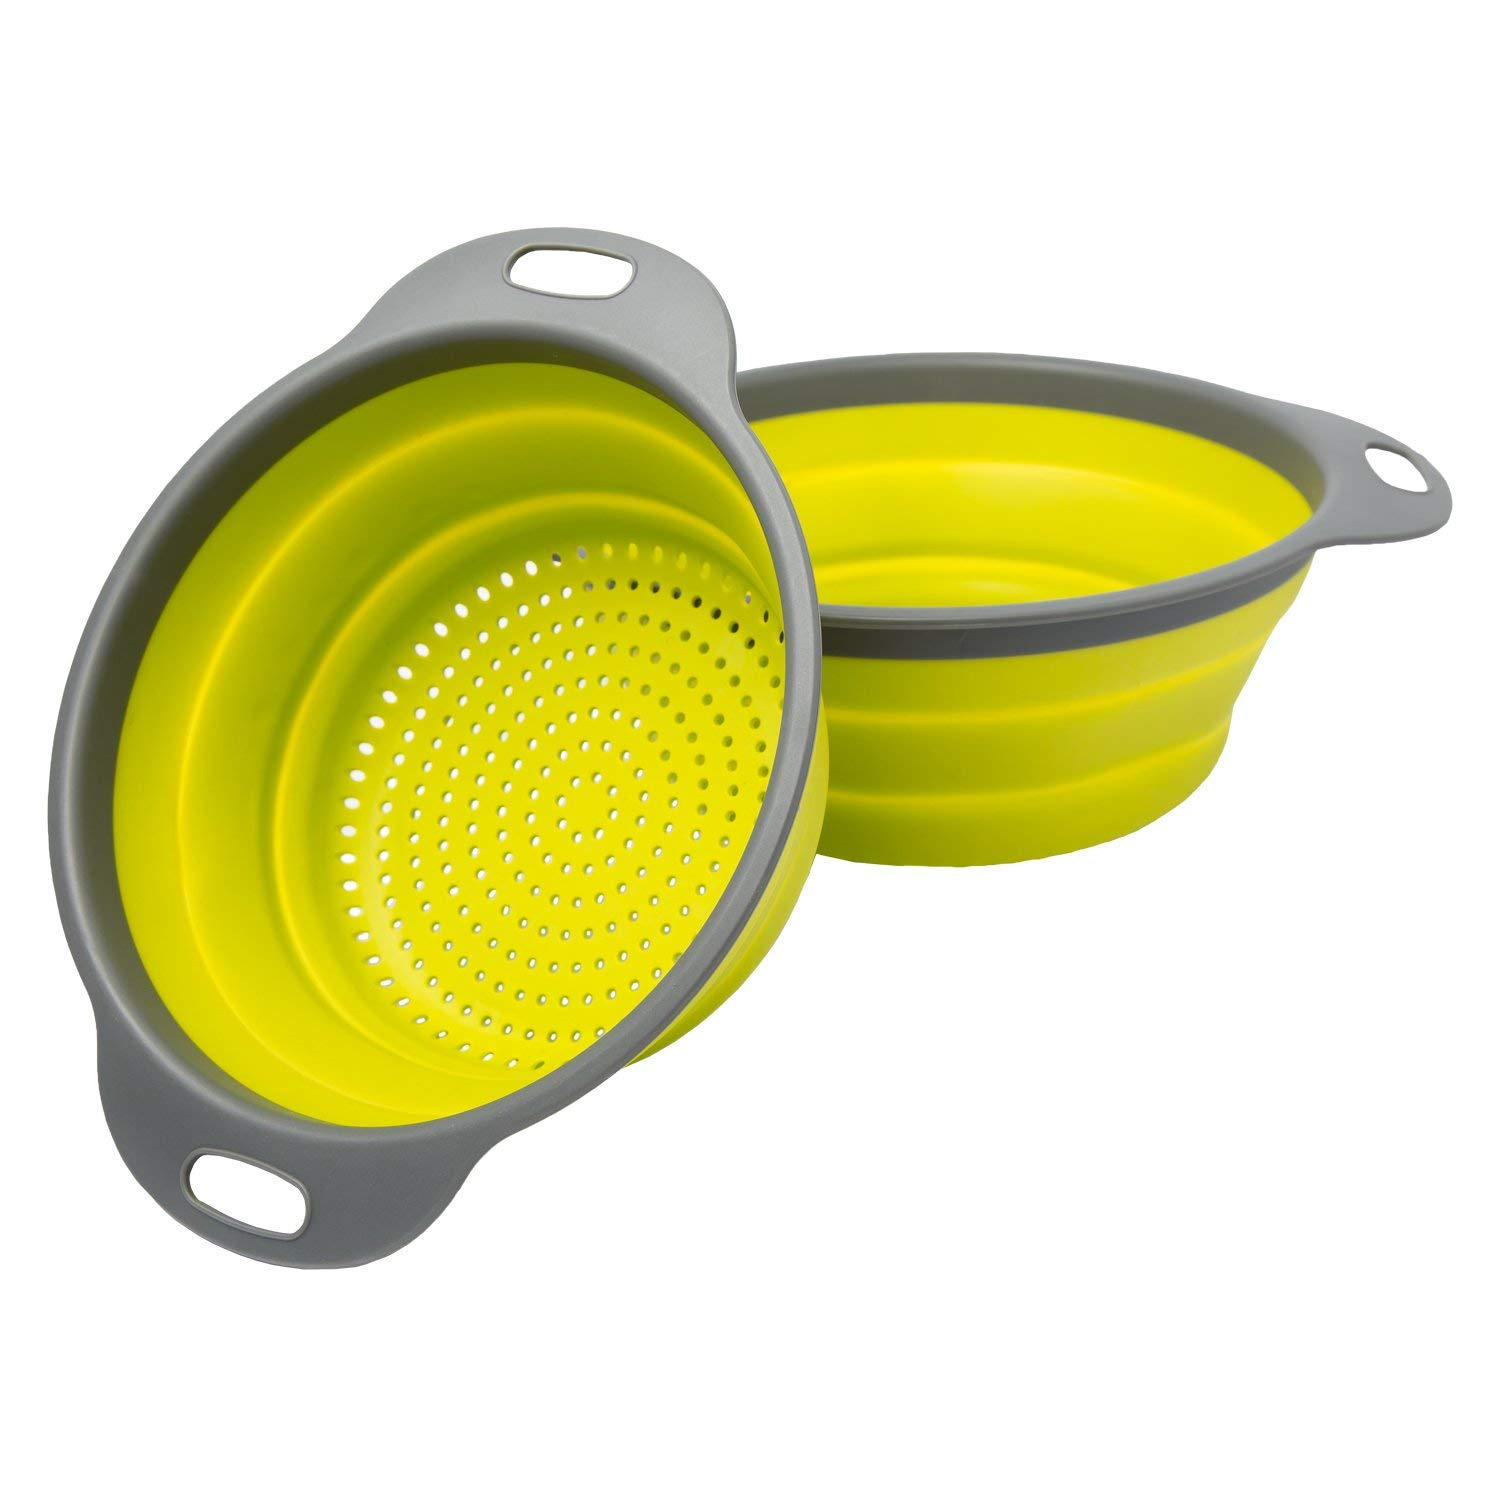 [Set of 2] Collapsible Kitchen Strainer (Colander) Set By Comfify – Includes Two Strainer Sizes: 8' and 9.5' - Blue and Gray